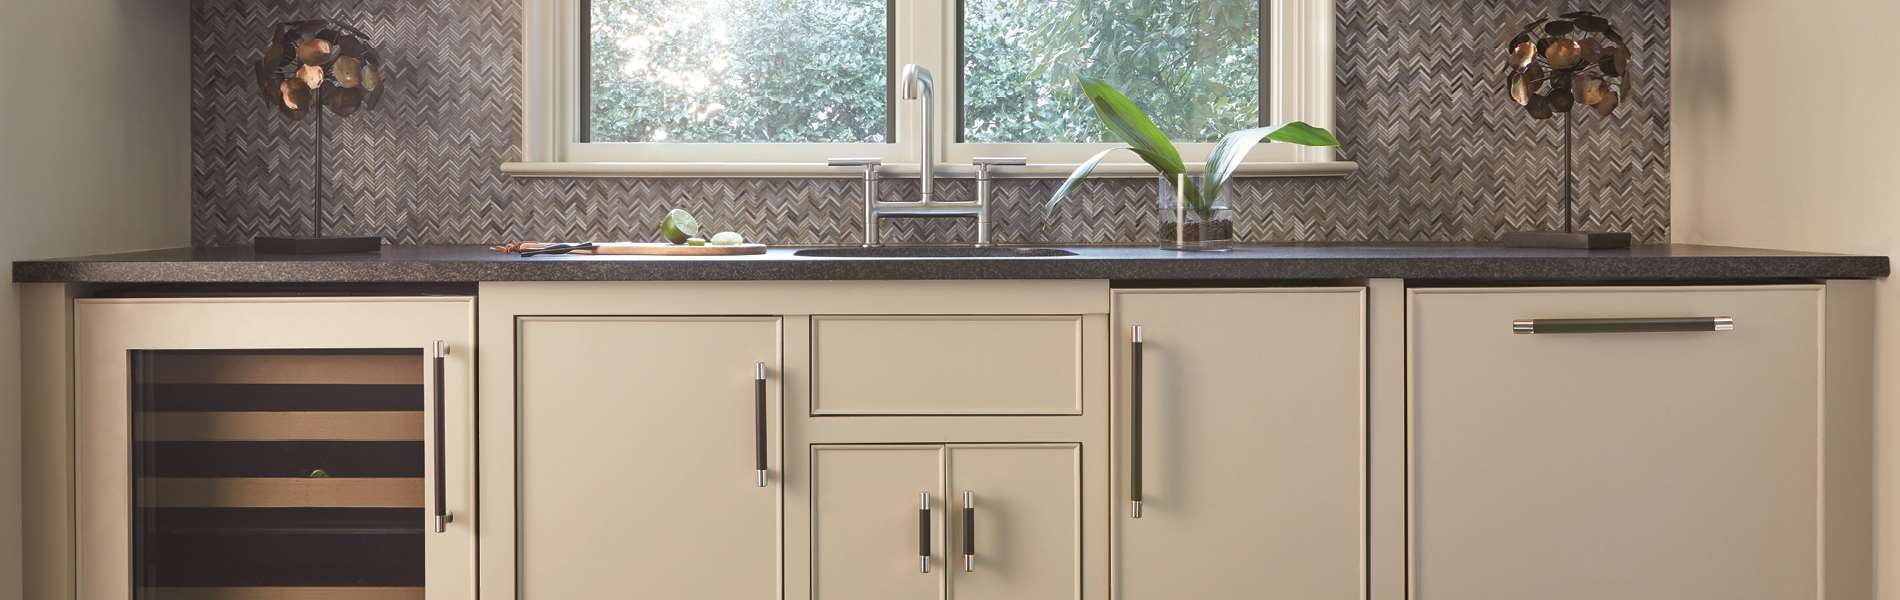 Polished-Nickel-and-Black-Bronze_Knobs-and-Pulls_Amerock_Cabinet-Hardware_Esquire_BP36557PNBBR-BP36558PNBBR-BP36561PNBBR_Kitchen_17